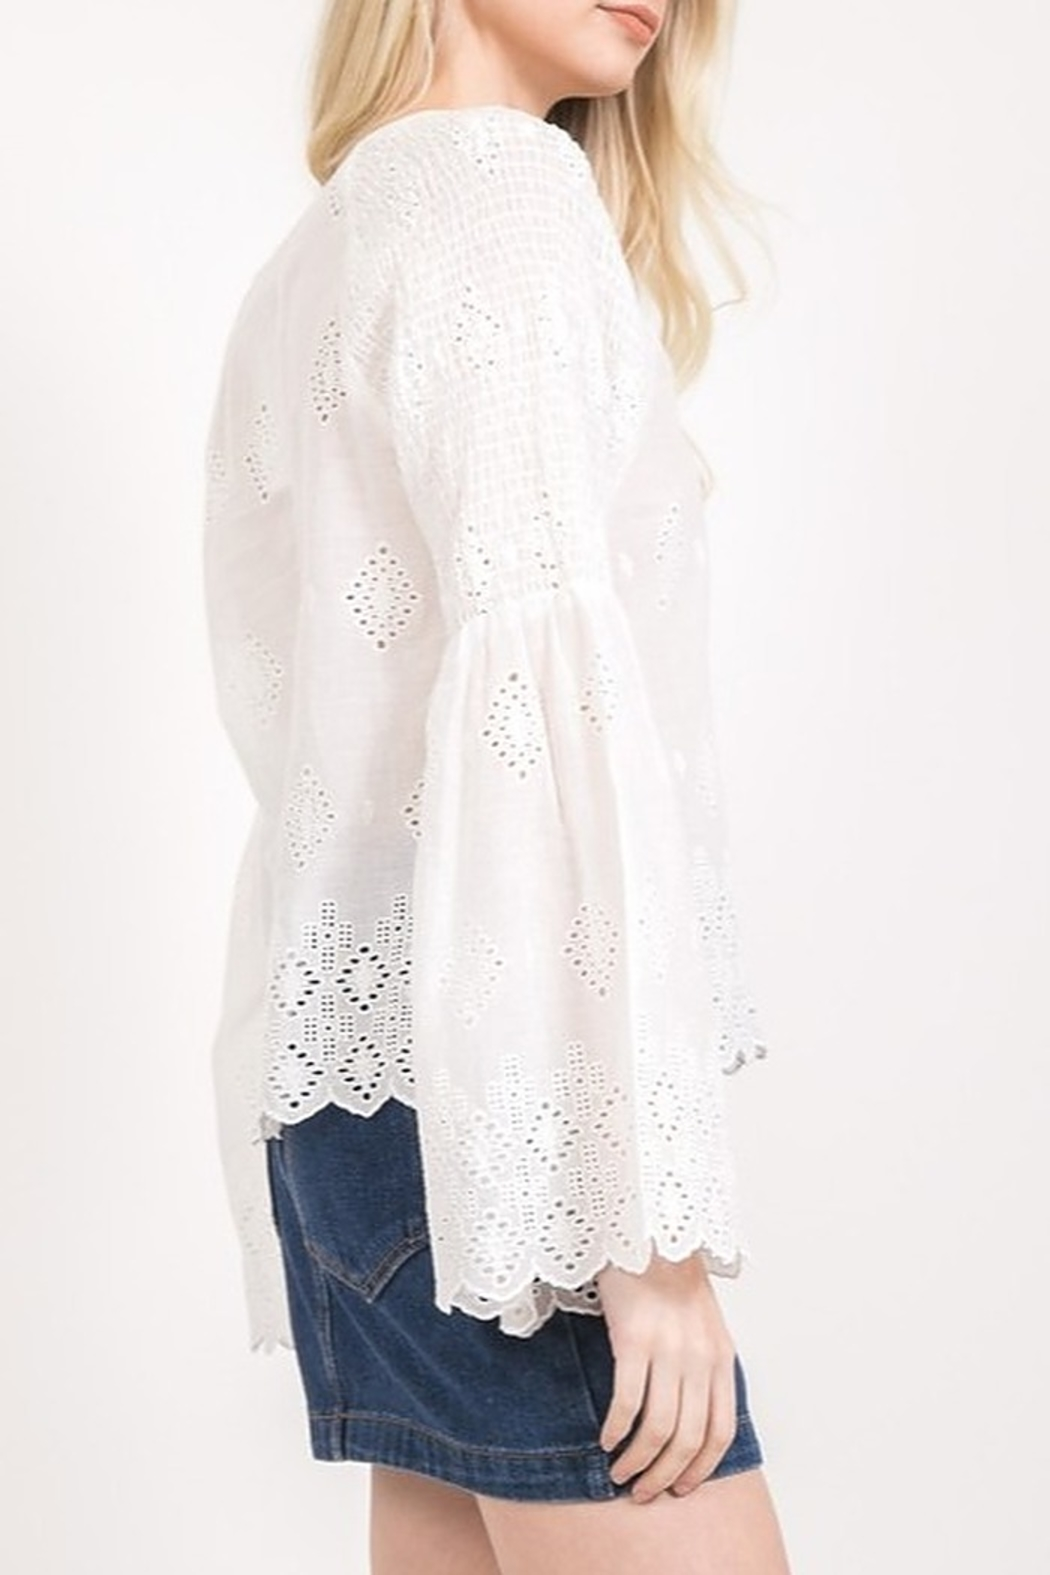 Very J Eyelet Lace Blouse - Front Full Image